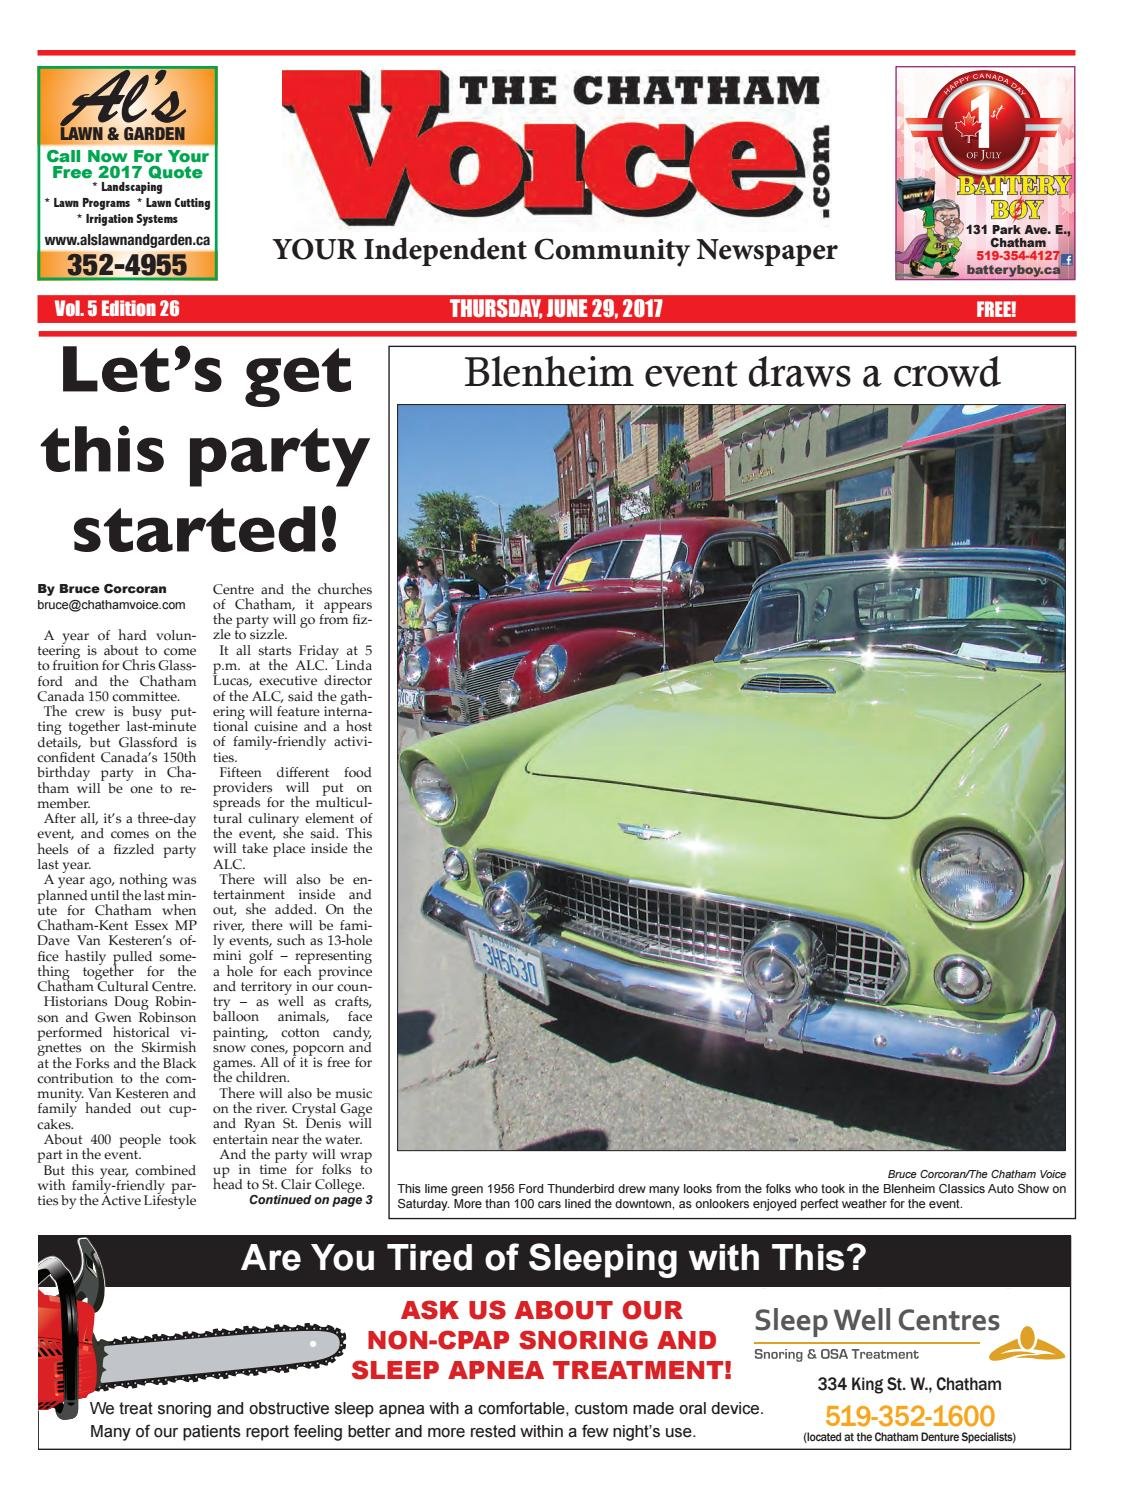 The Chatham Voice June 29 2017 By Issuu Full Bike Pato Fx 1